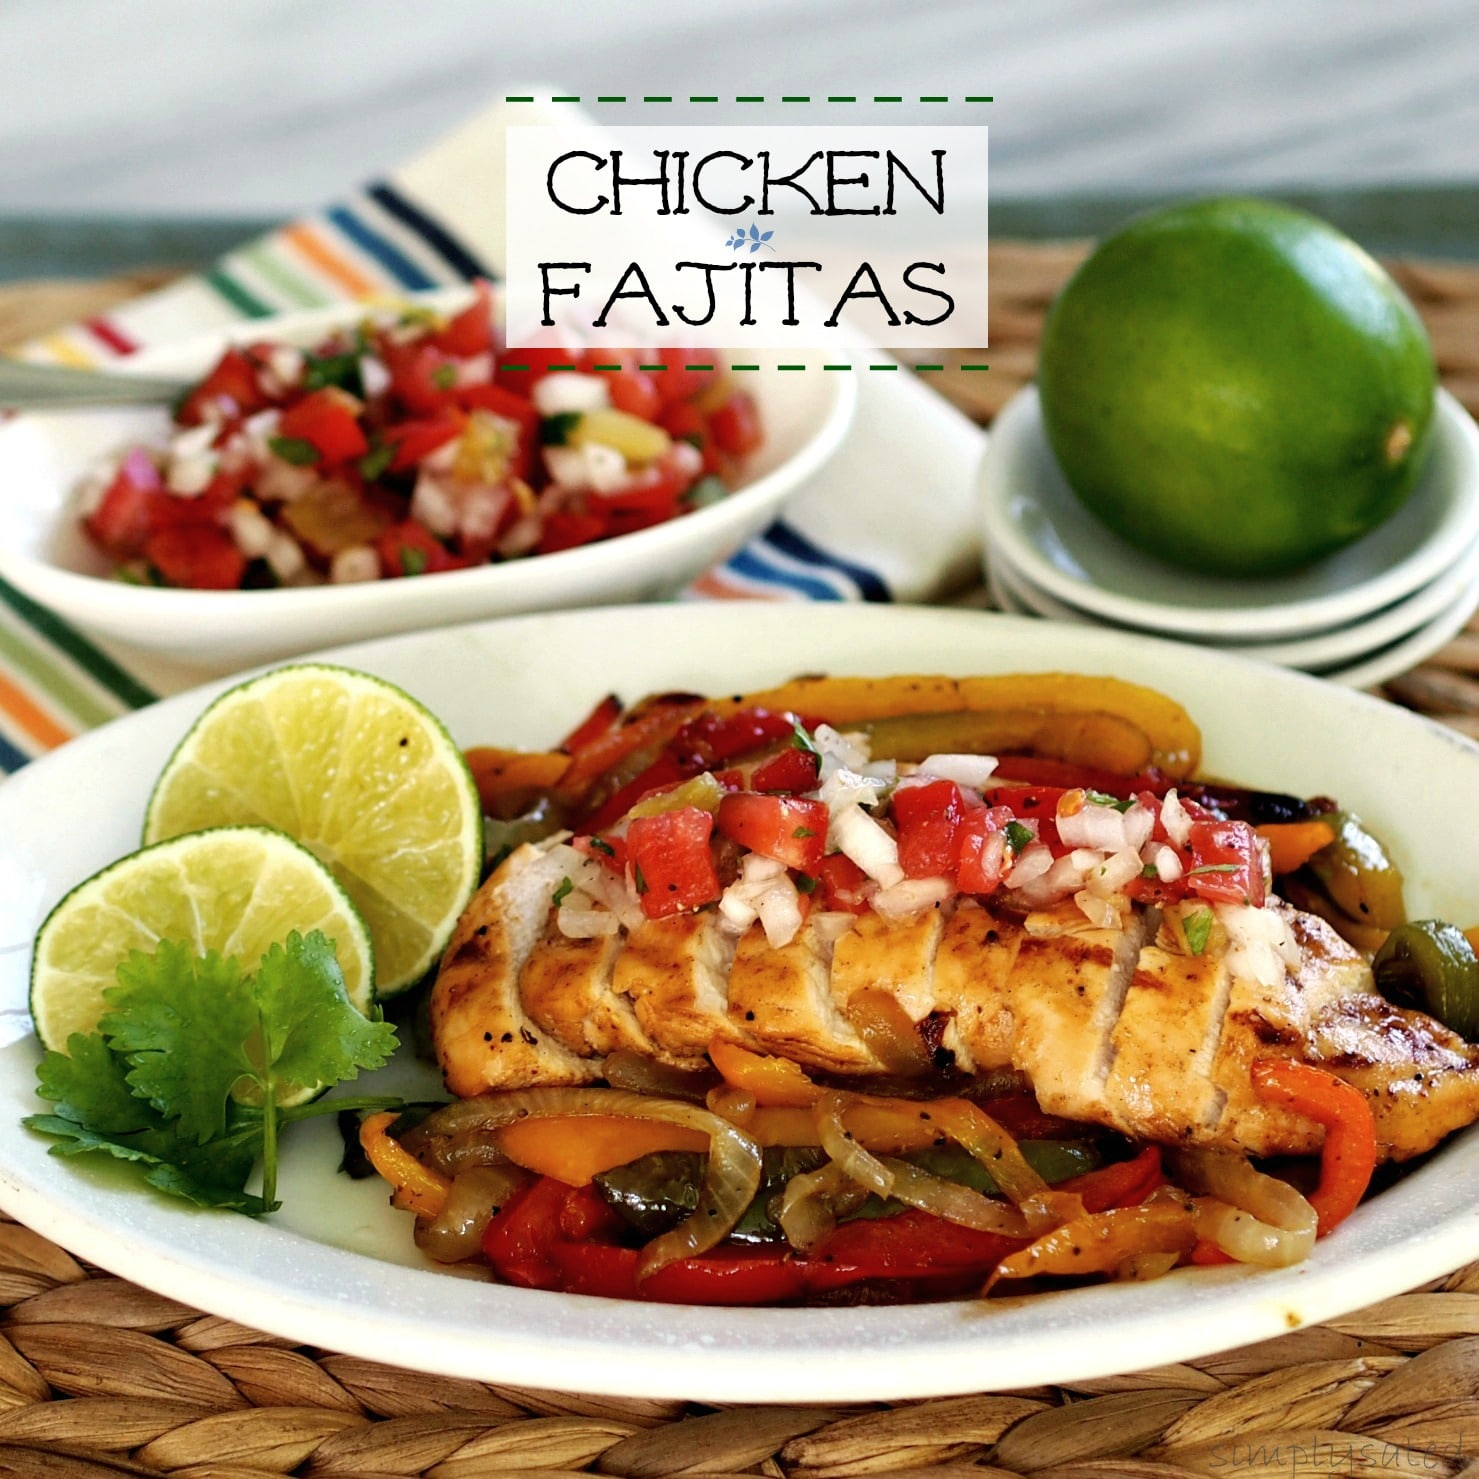 Chicken fajitas simply sated chicken fajitas fresh vegetables tender chicken seasoned perfectly then grilled simply sated forumfinder Choice Image